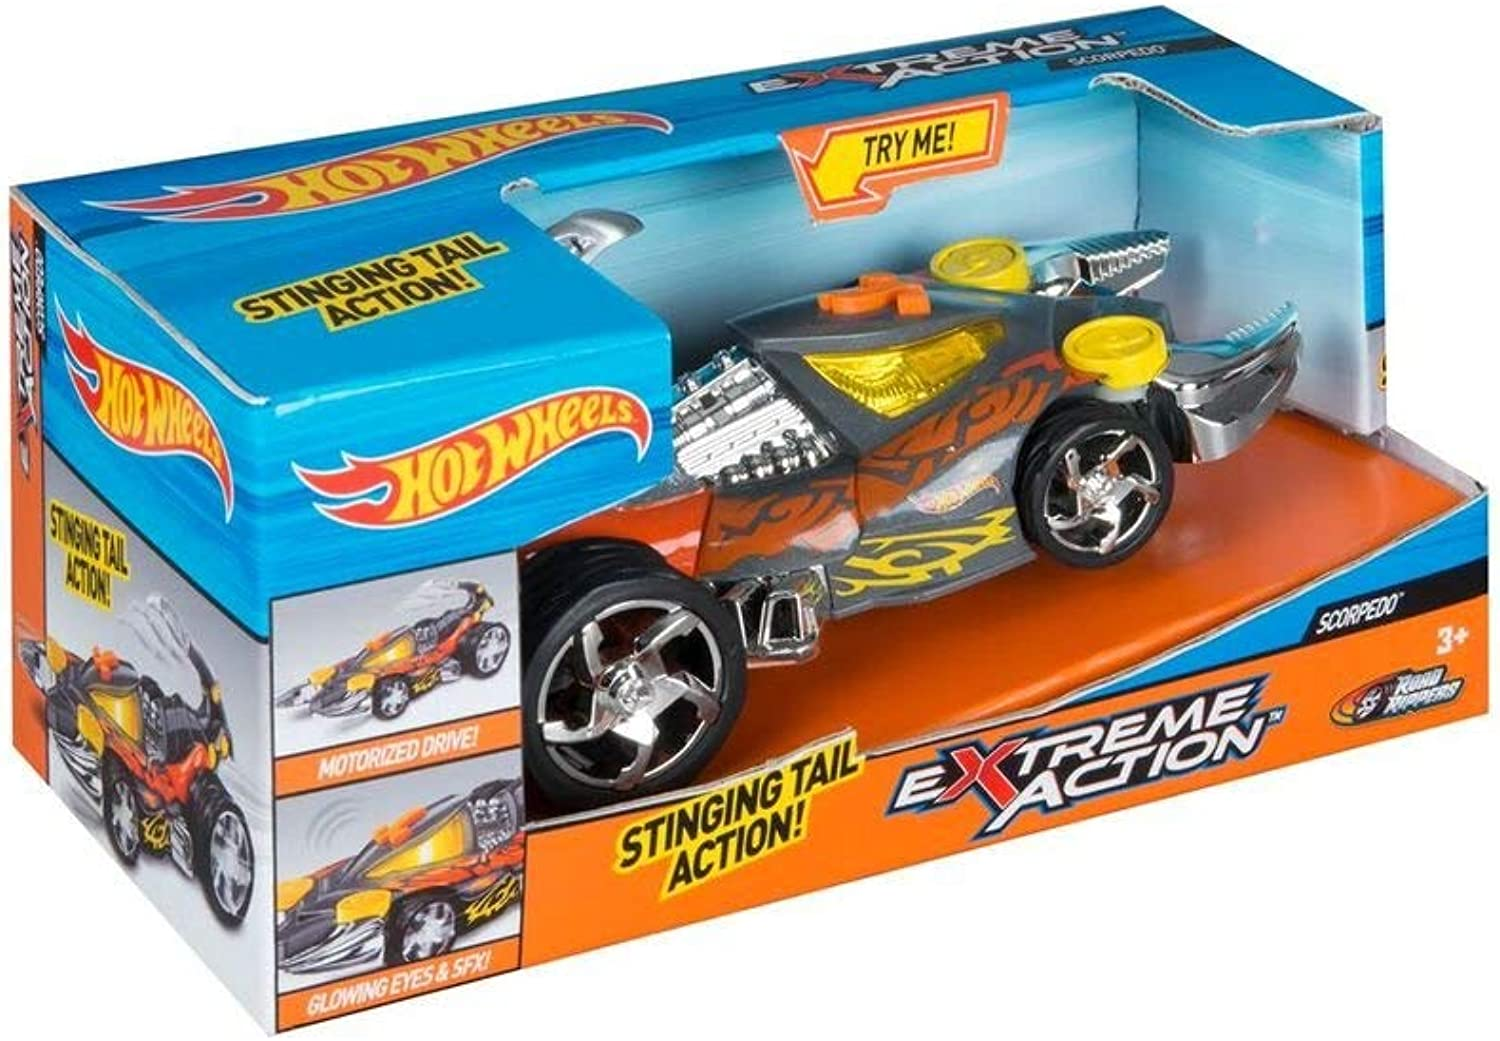 Hot Wheels Extreme Action Scorpedo Toy Car Spider Light and Sound